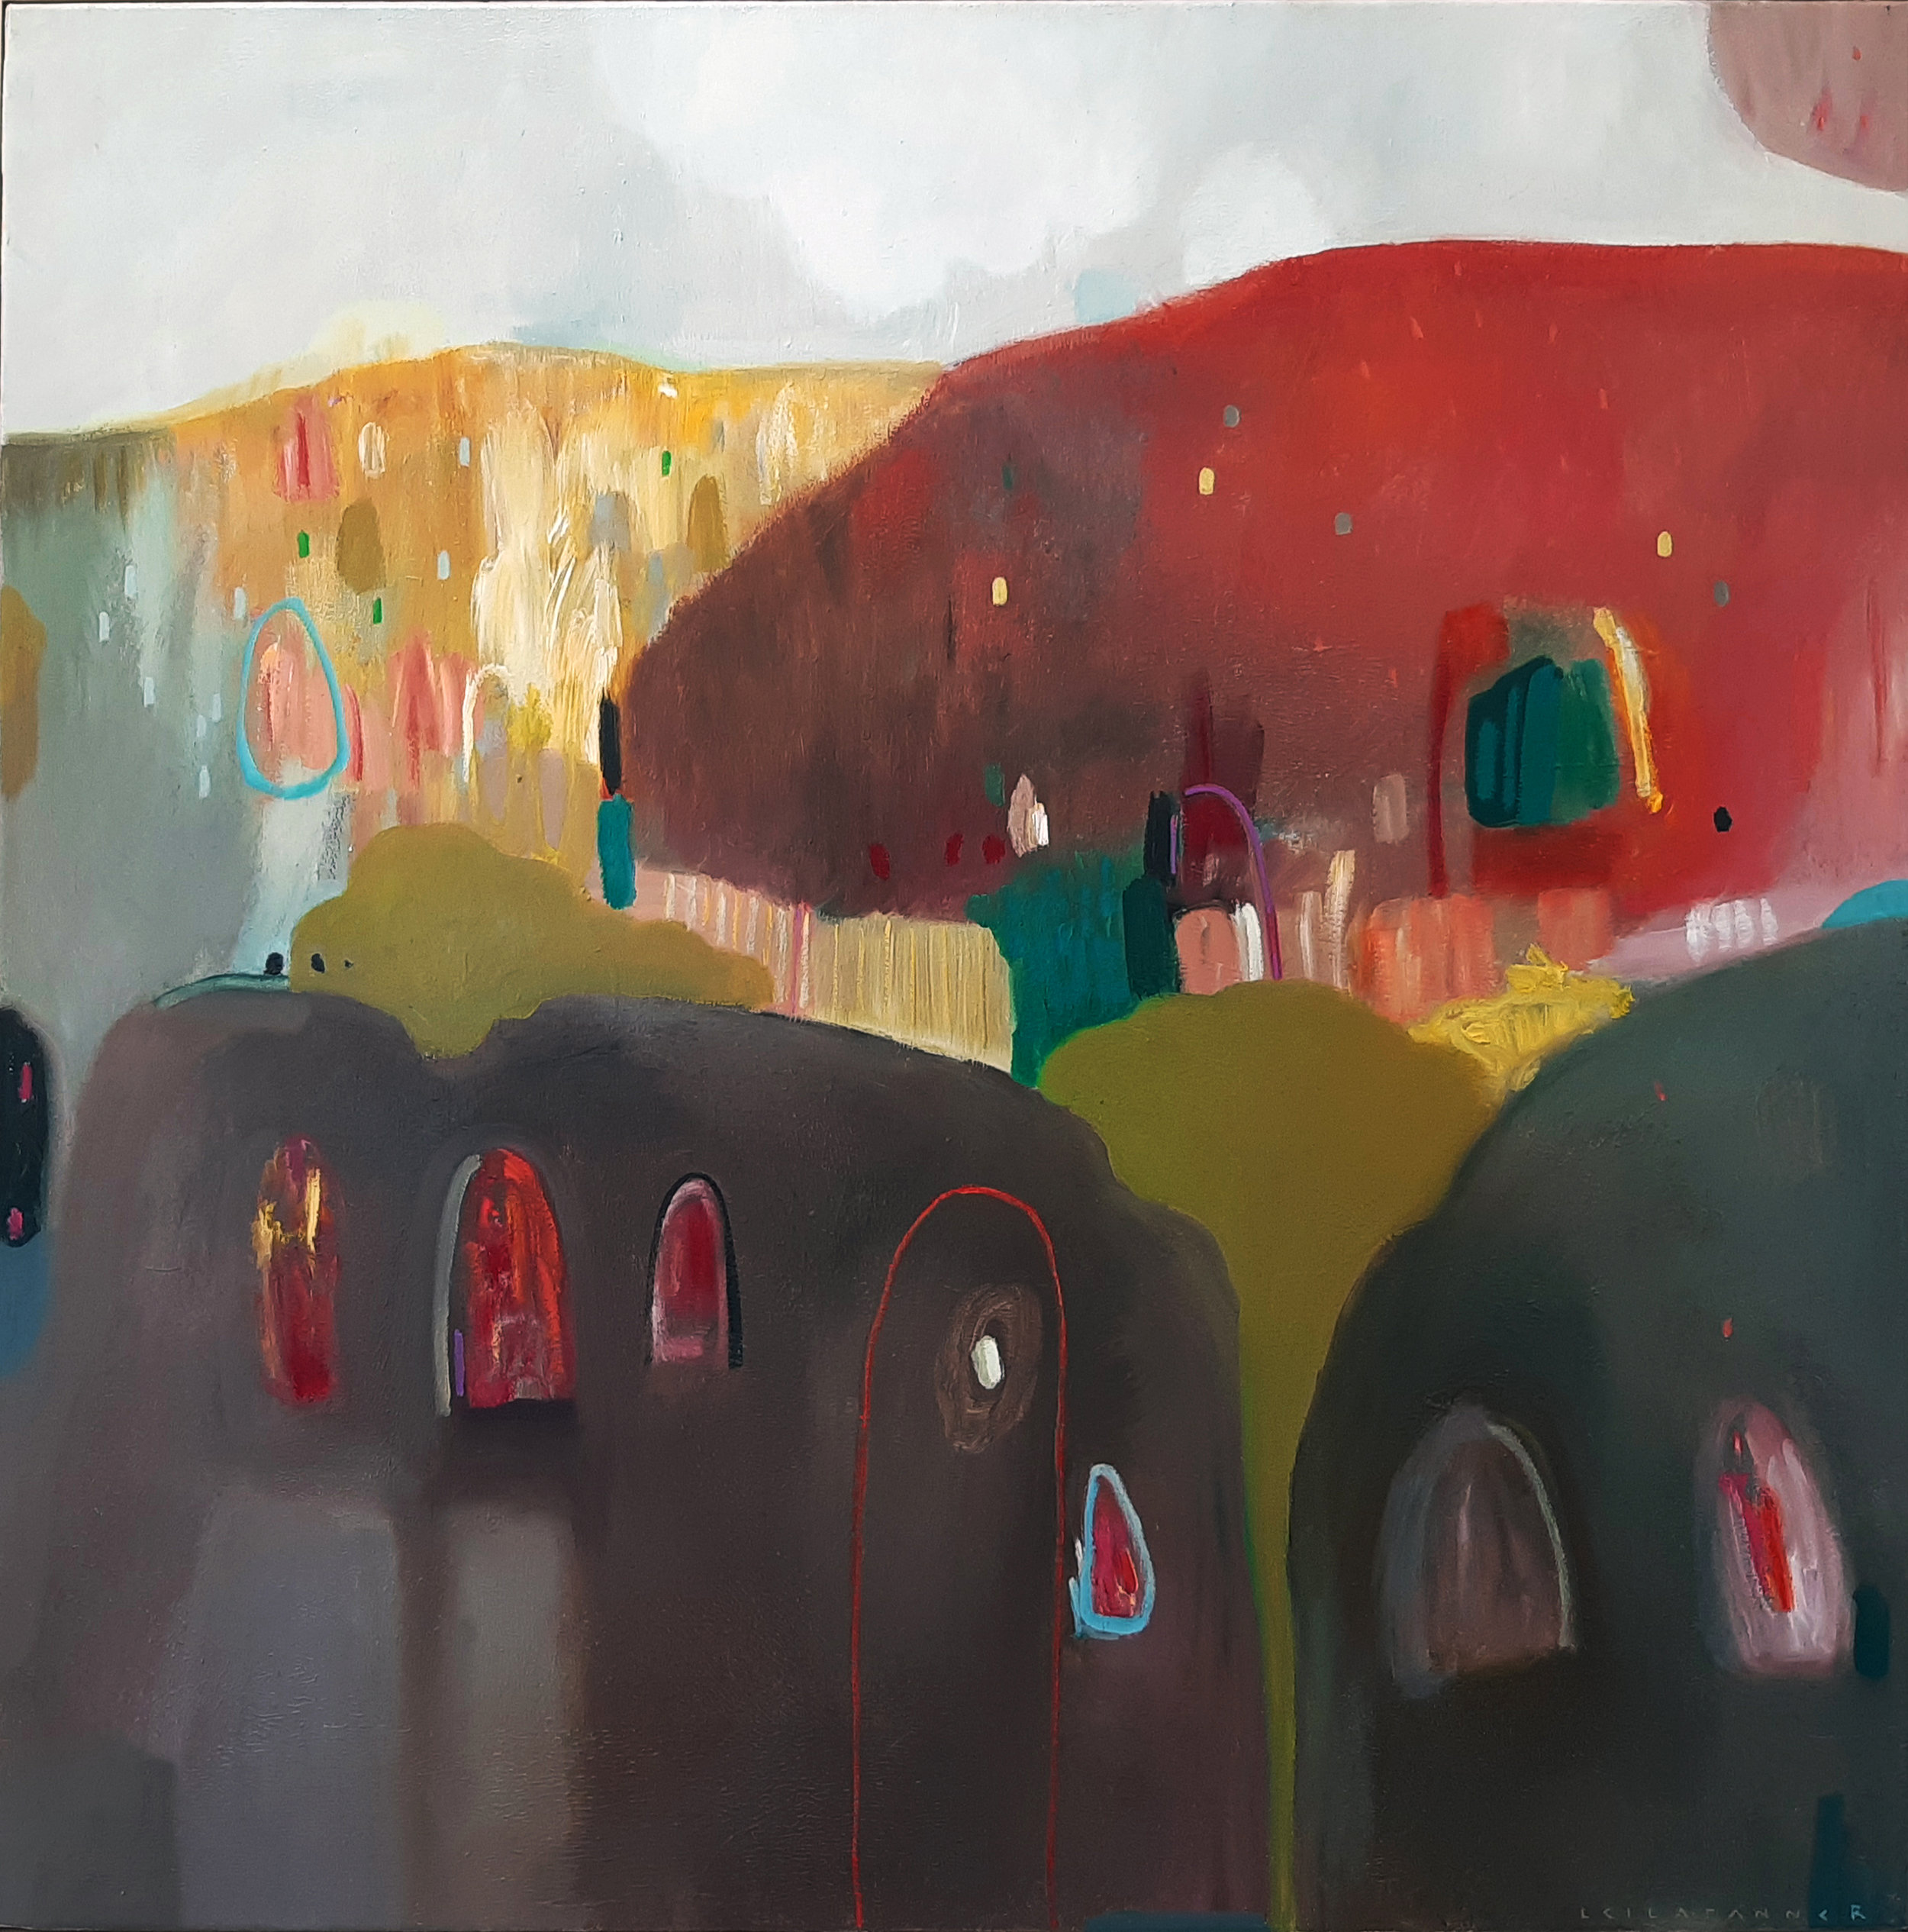 Village II - Oil and Oil Pastel on Canvas1000 x 1000 mmFramed22 000 ZAR